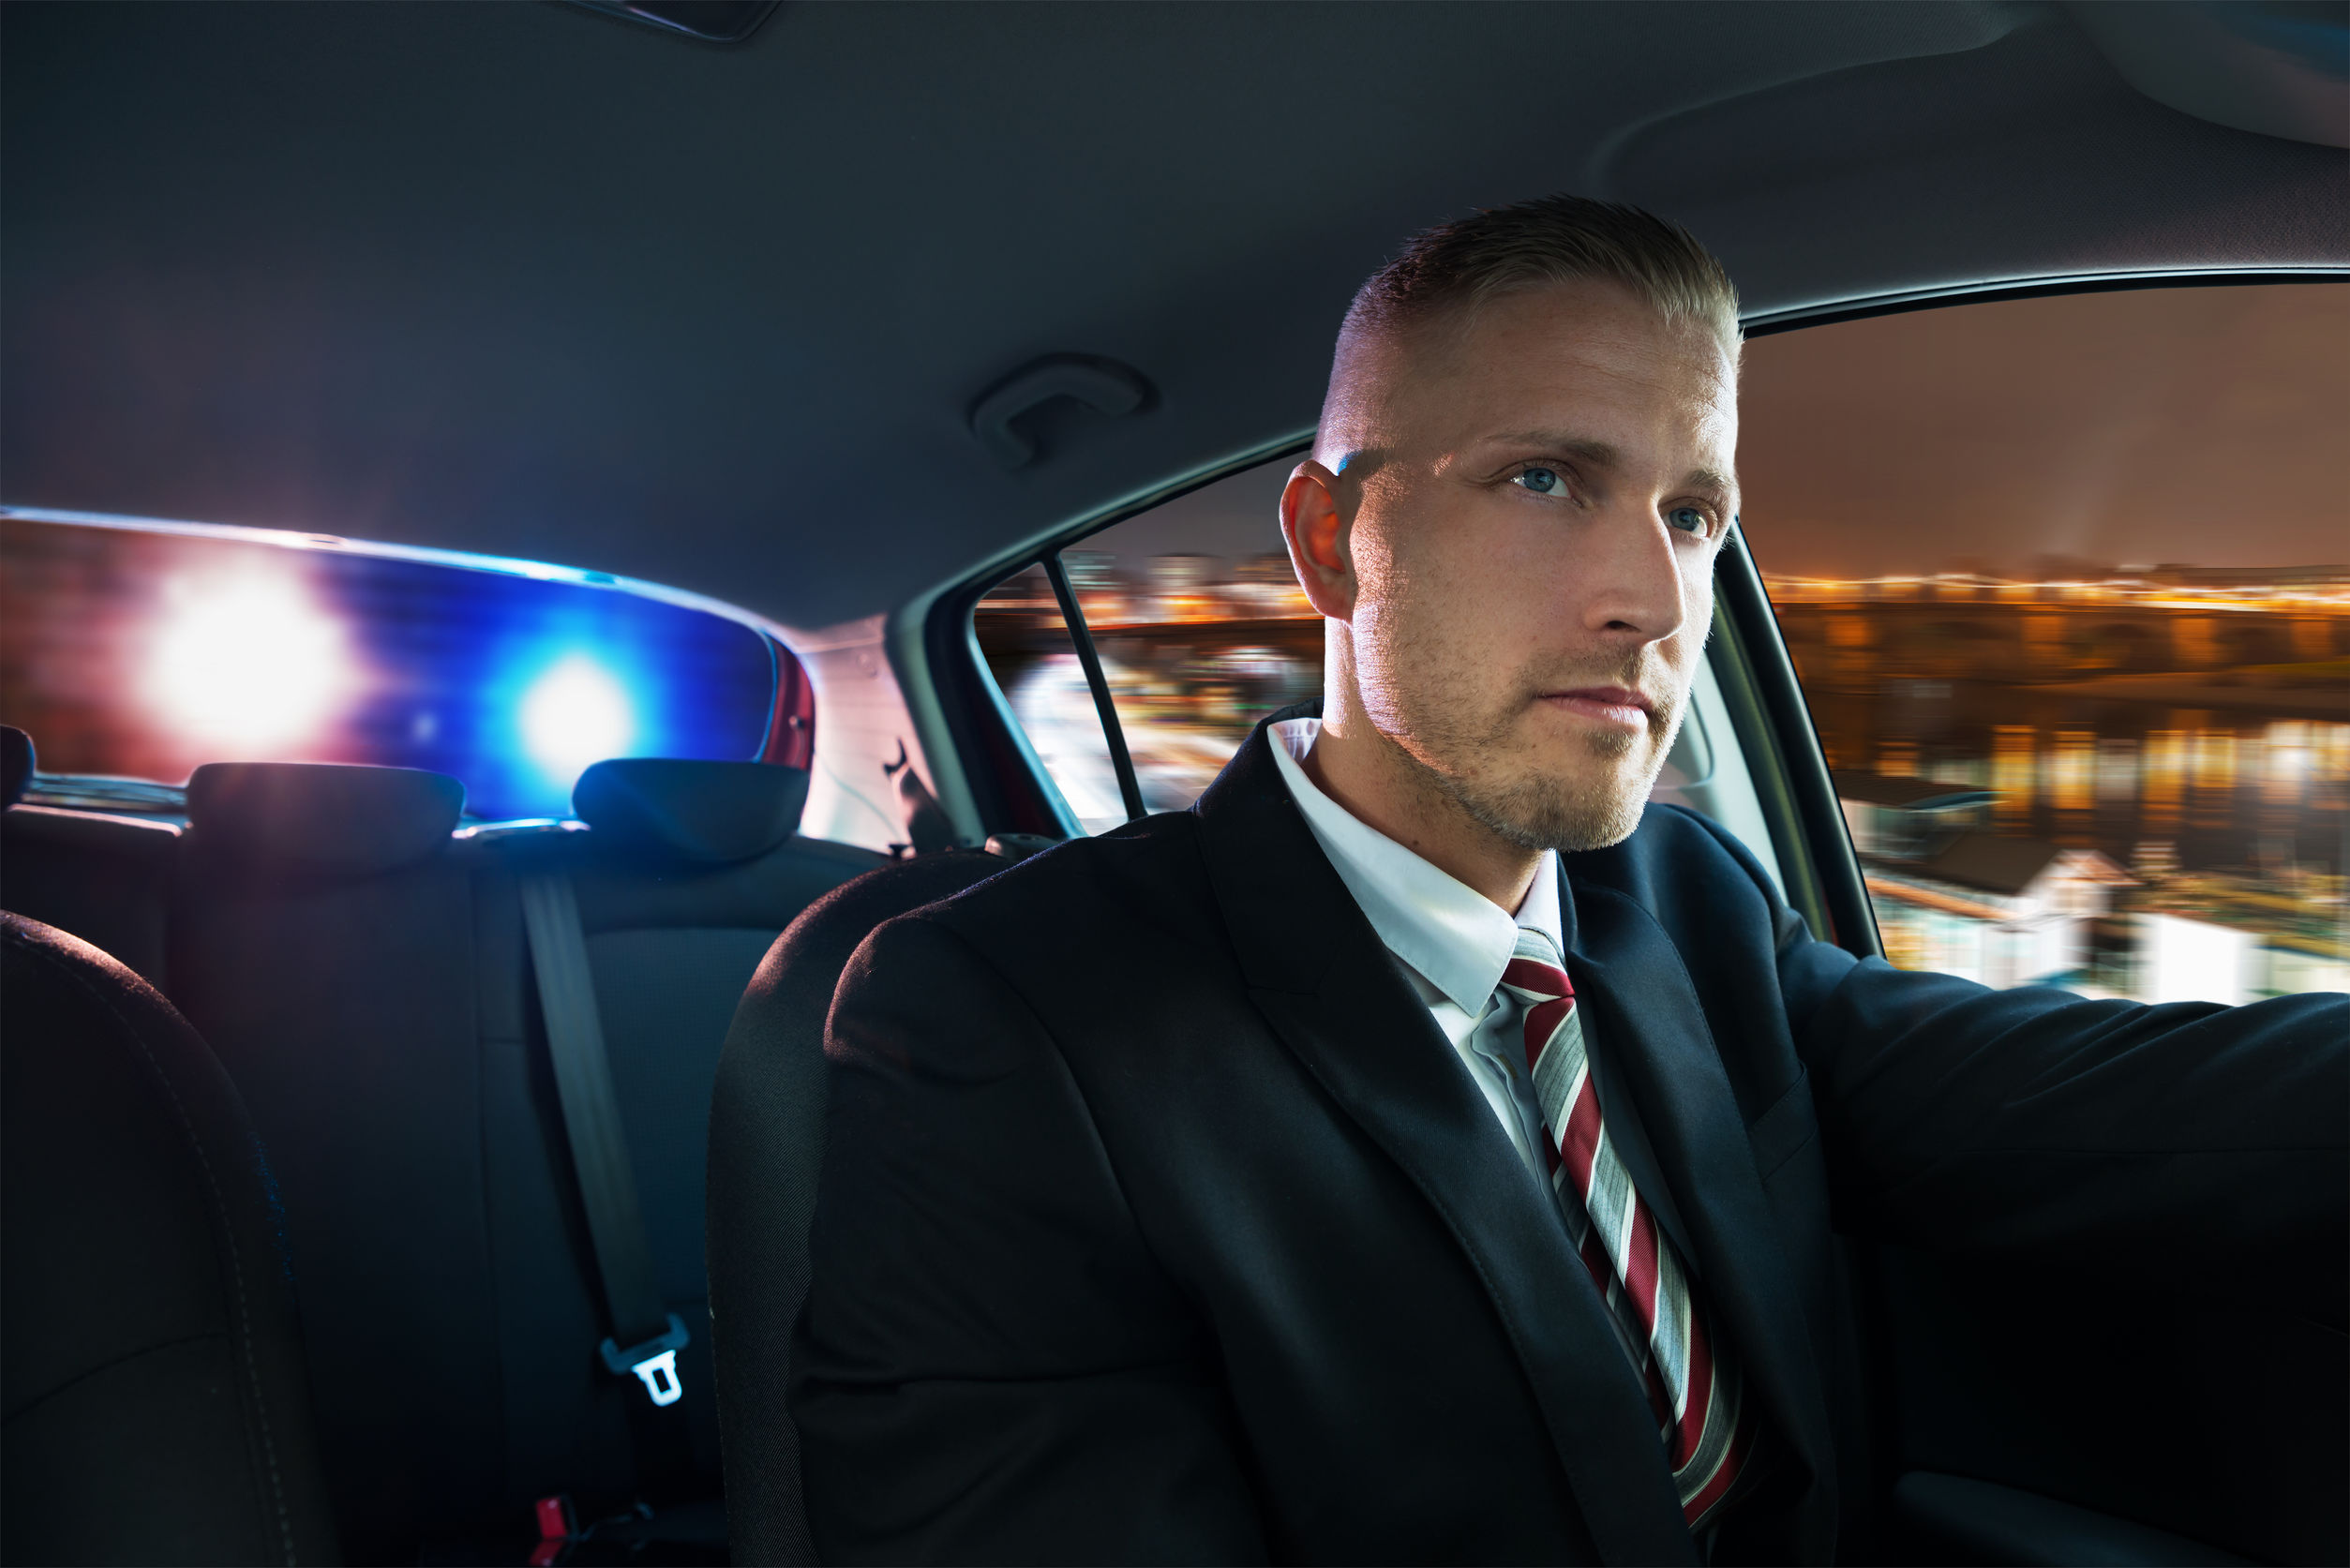 Portrait Of A Young Man Chased And Pulled Over By Police